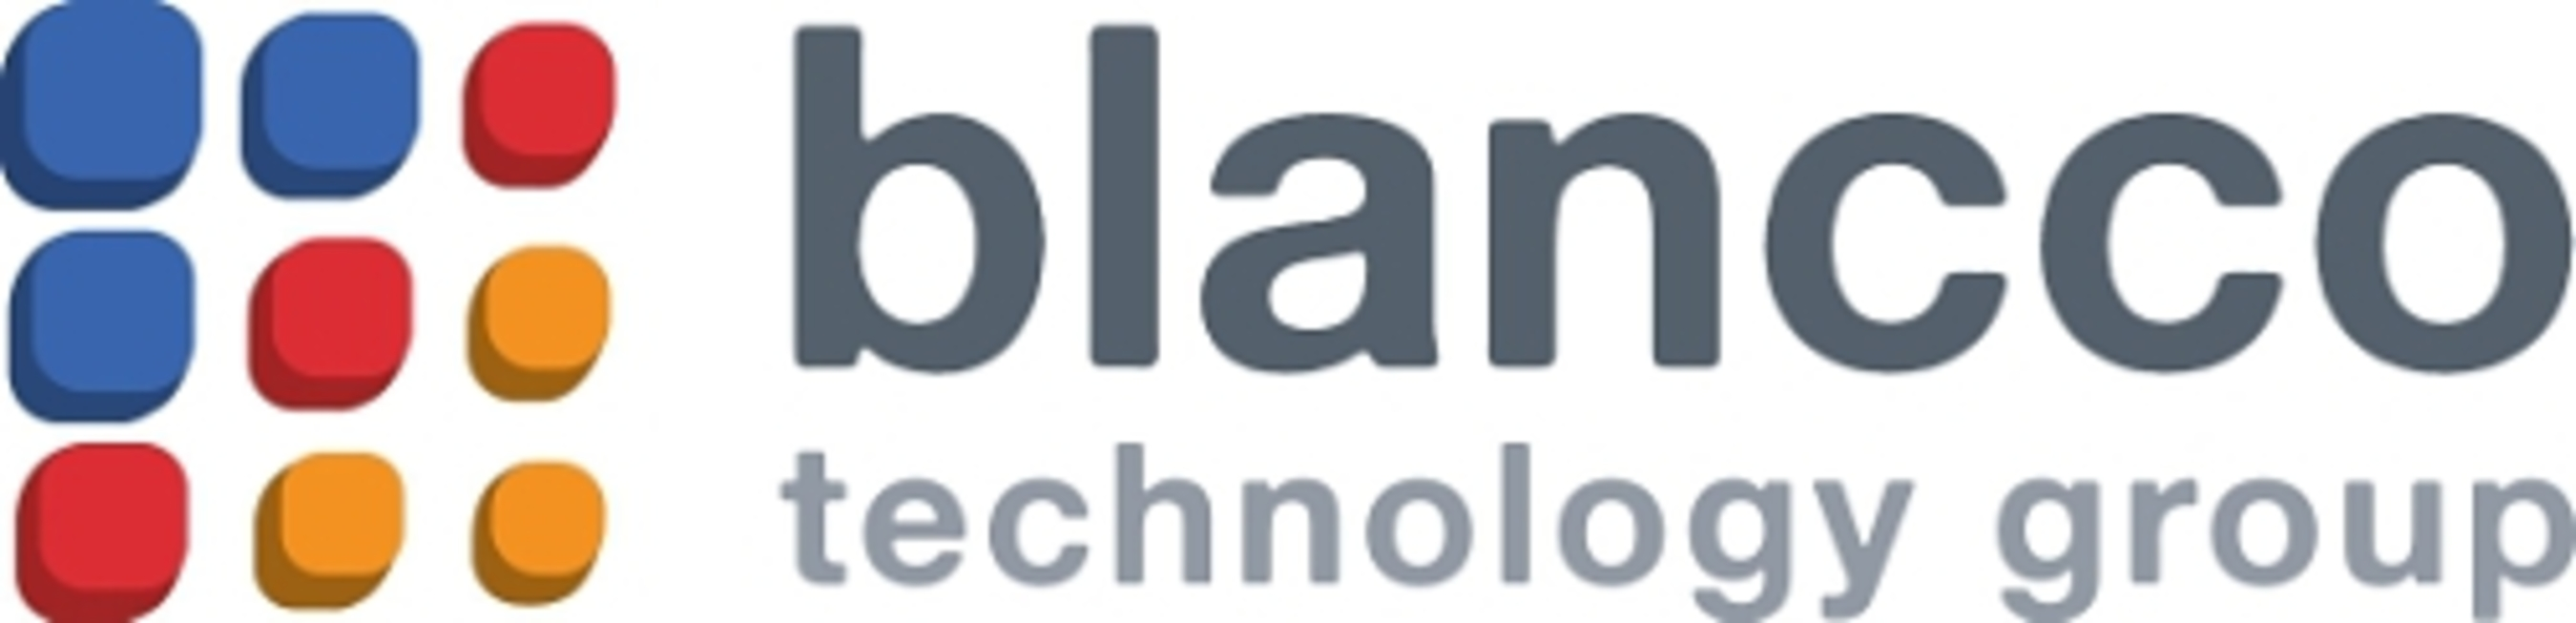 Blancco is the proven data erasure solution for millions of users around the globe. As the global leader in ...